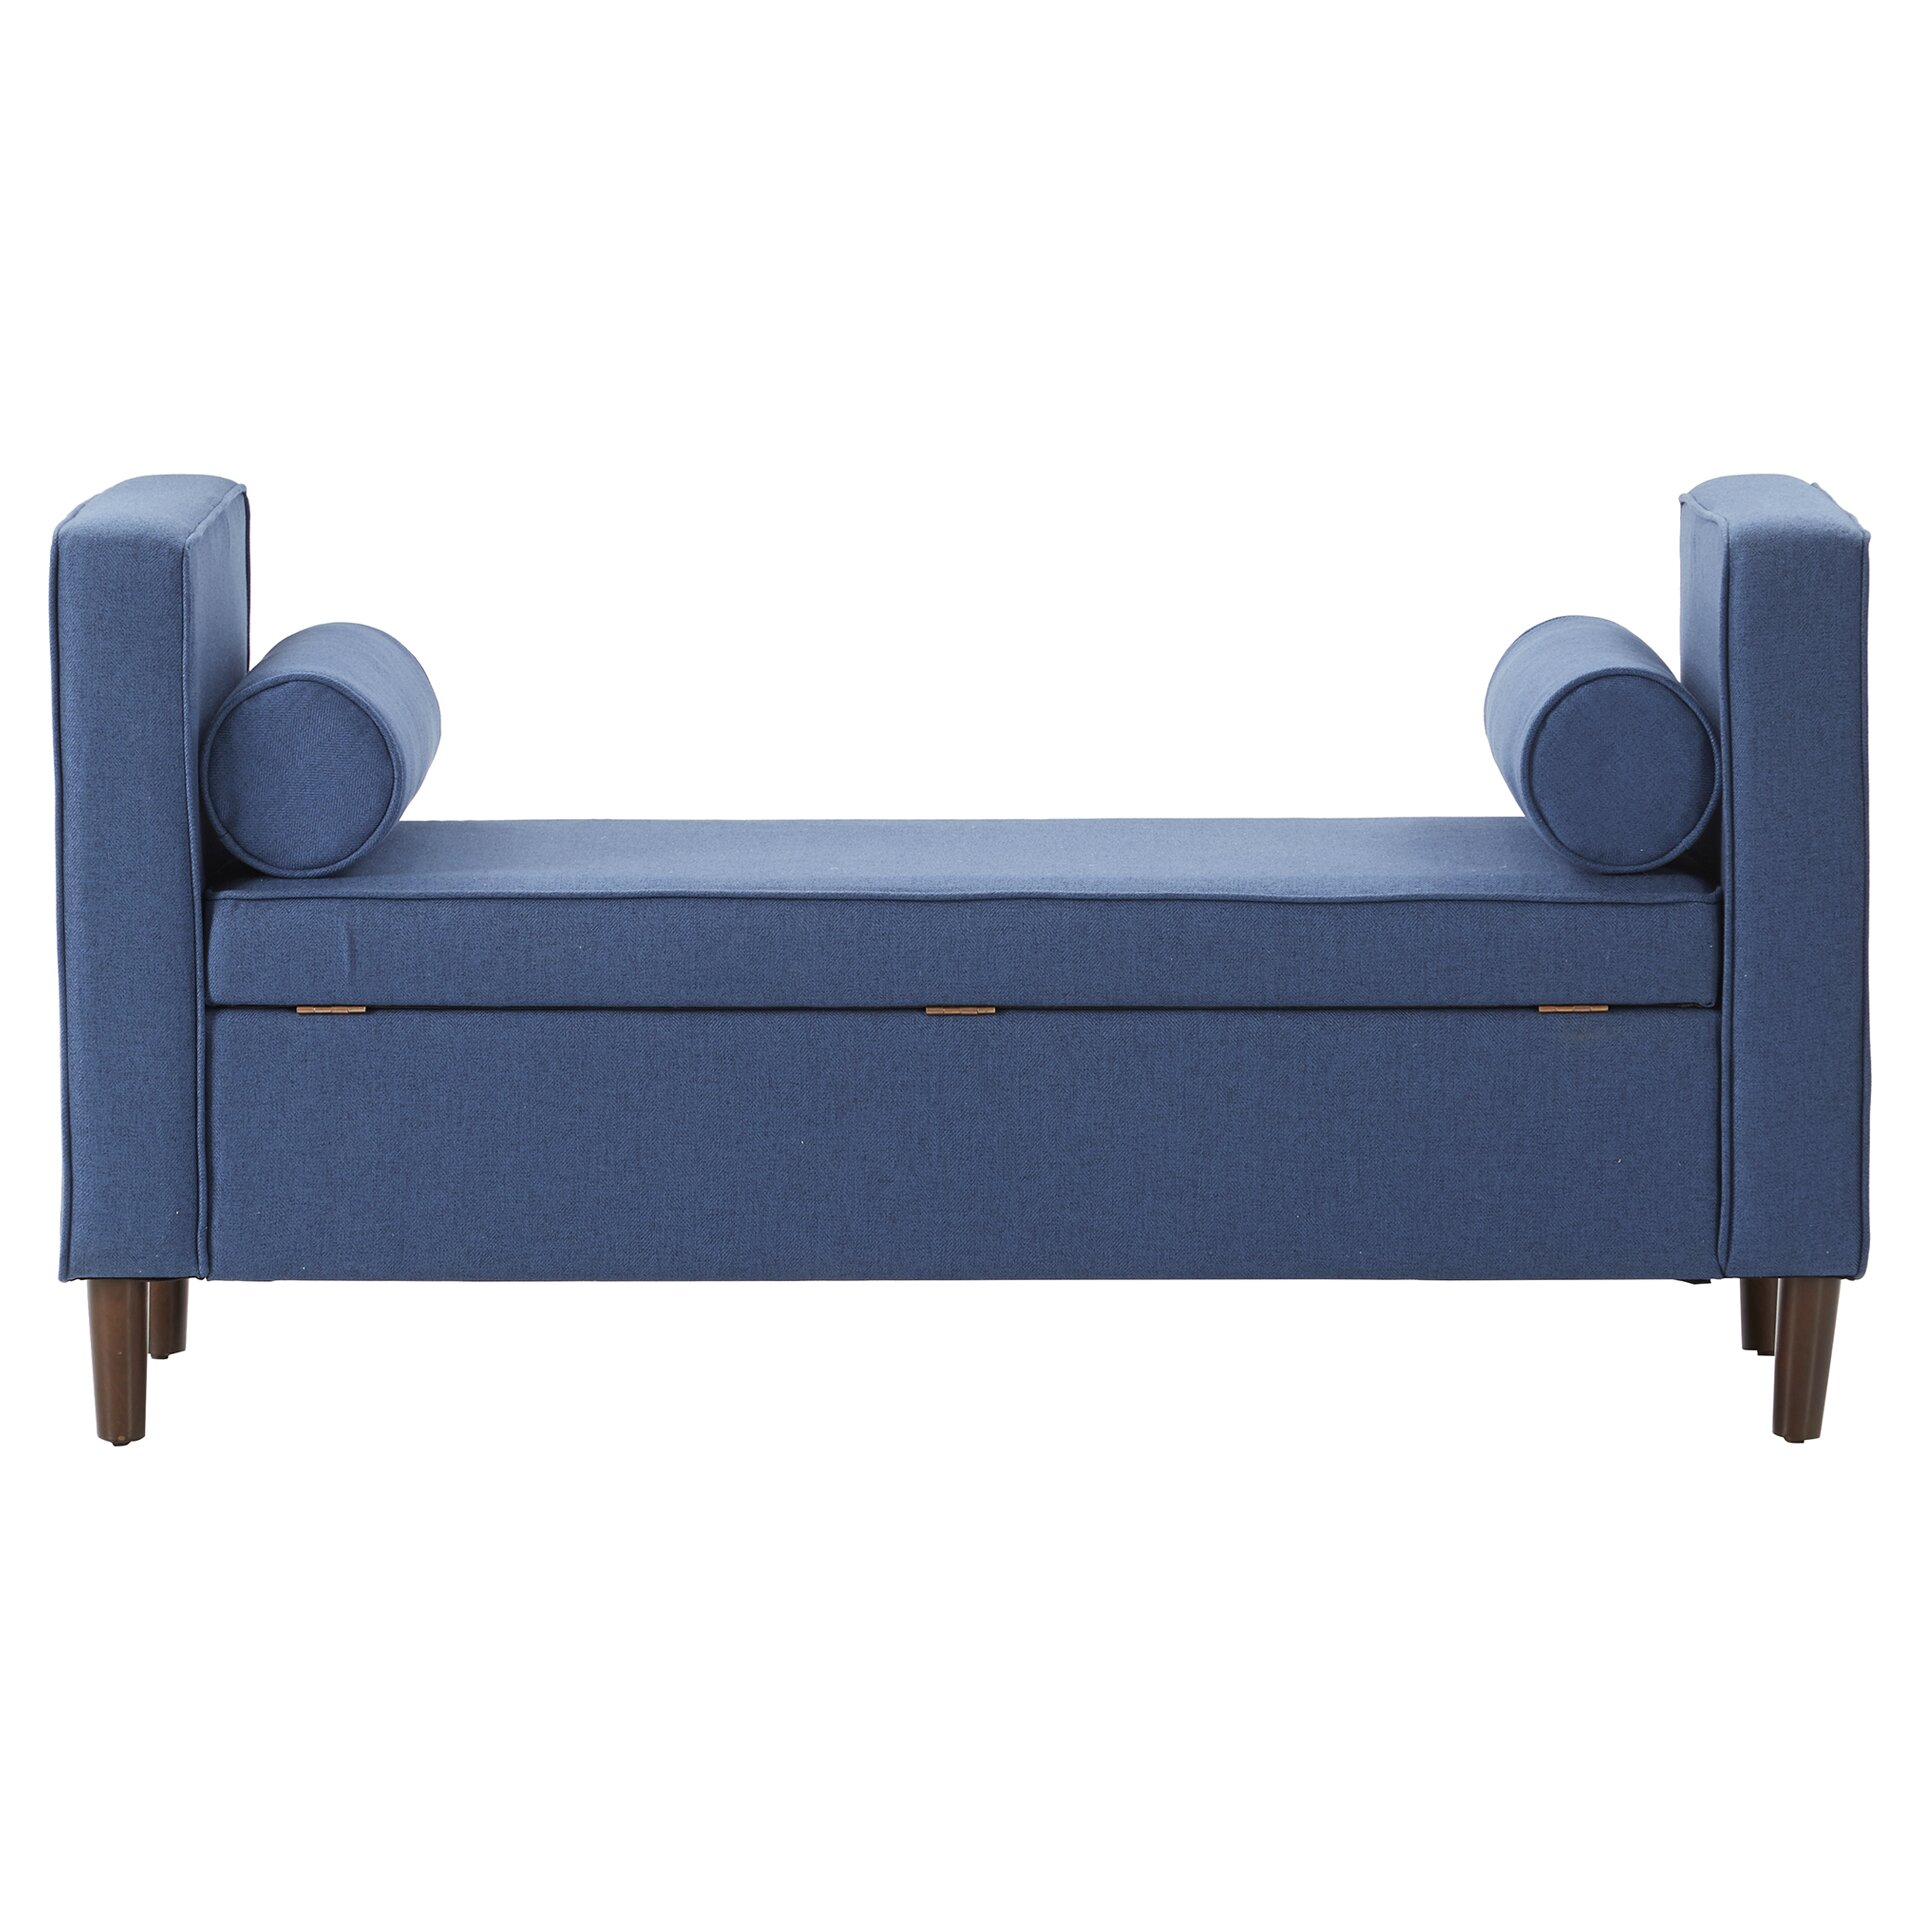 Mercury Row Rimo Upholstered Storage Bench Reviews Wayfair